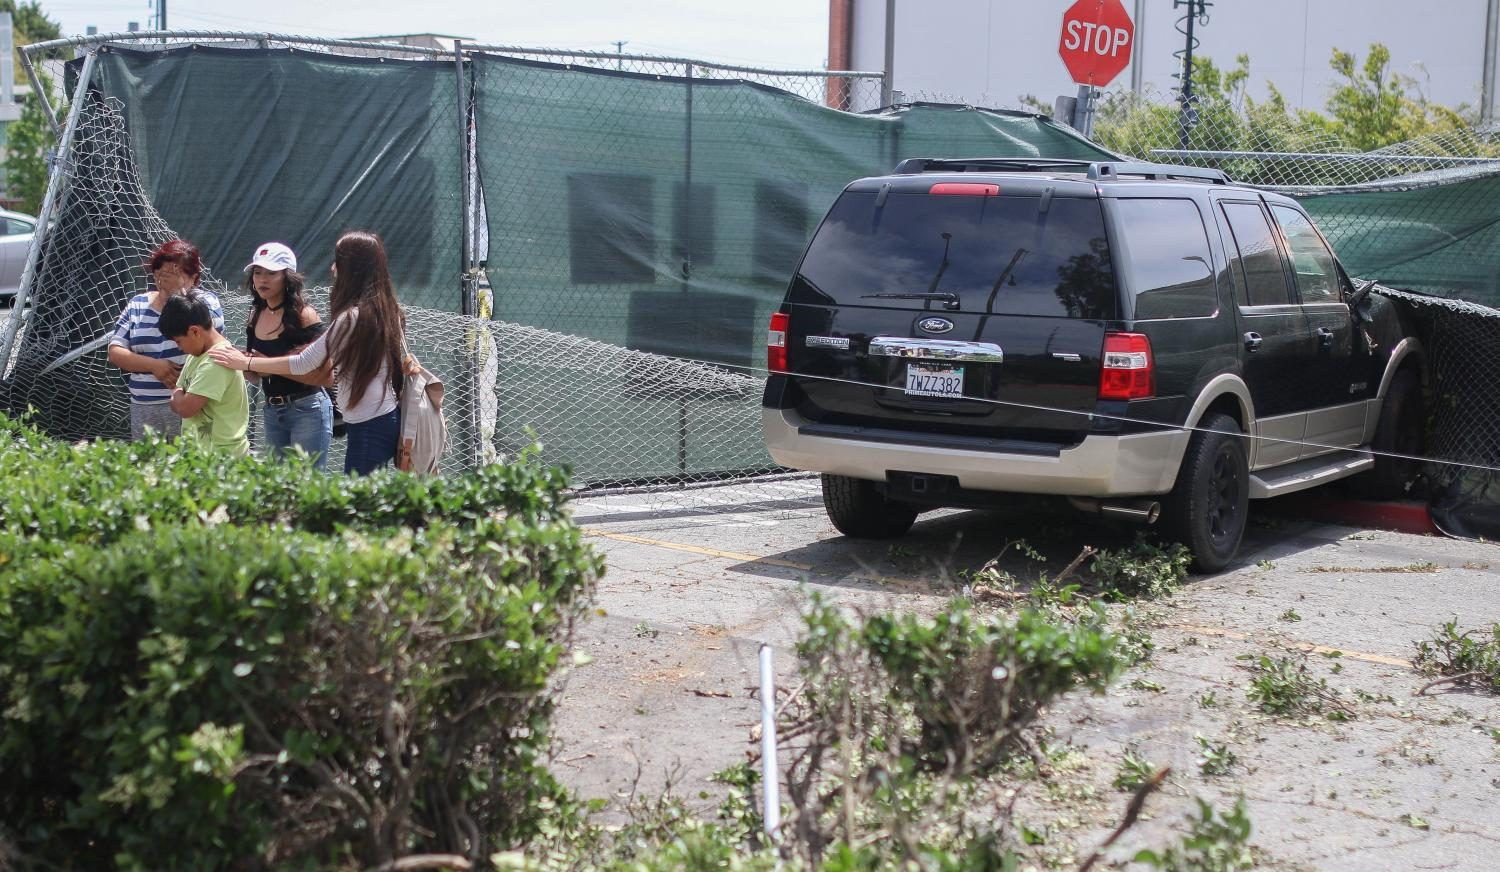 Two vehicles collide next to Parking Lot B; car crashes into construction fence